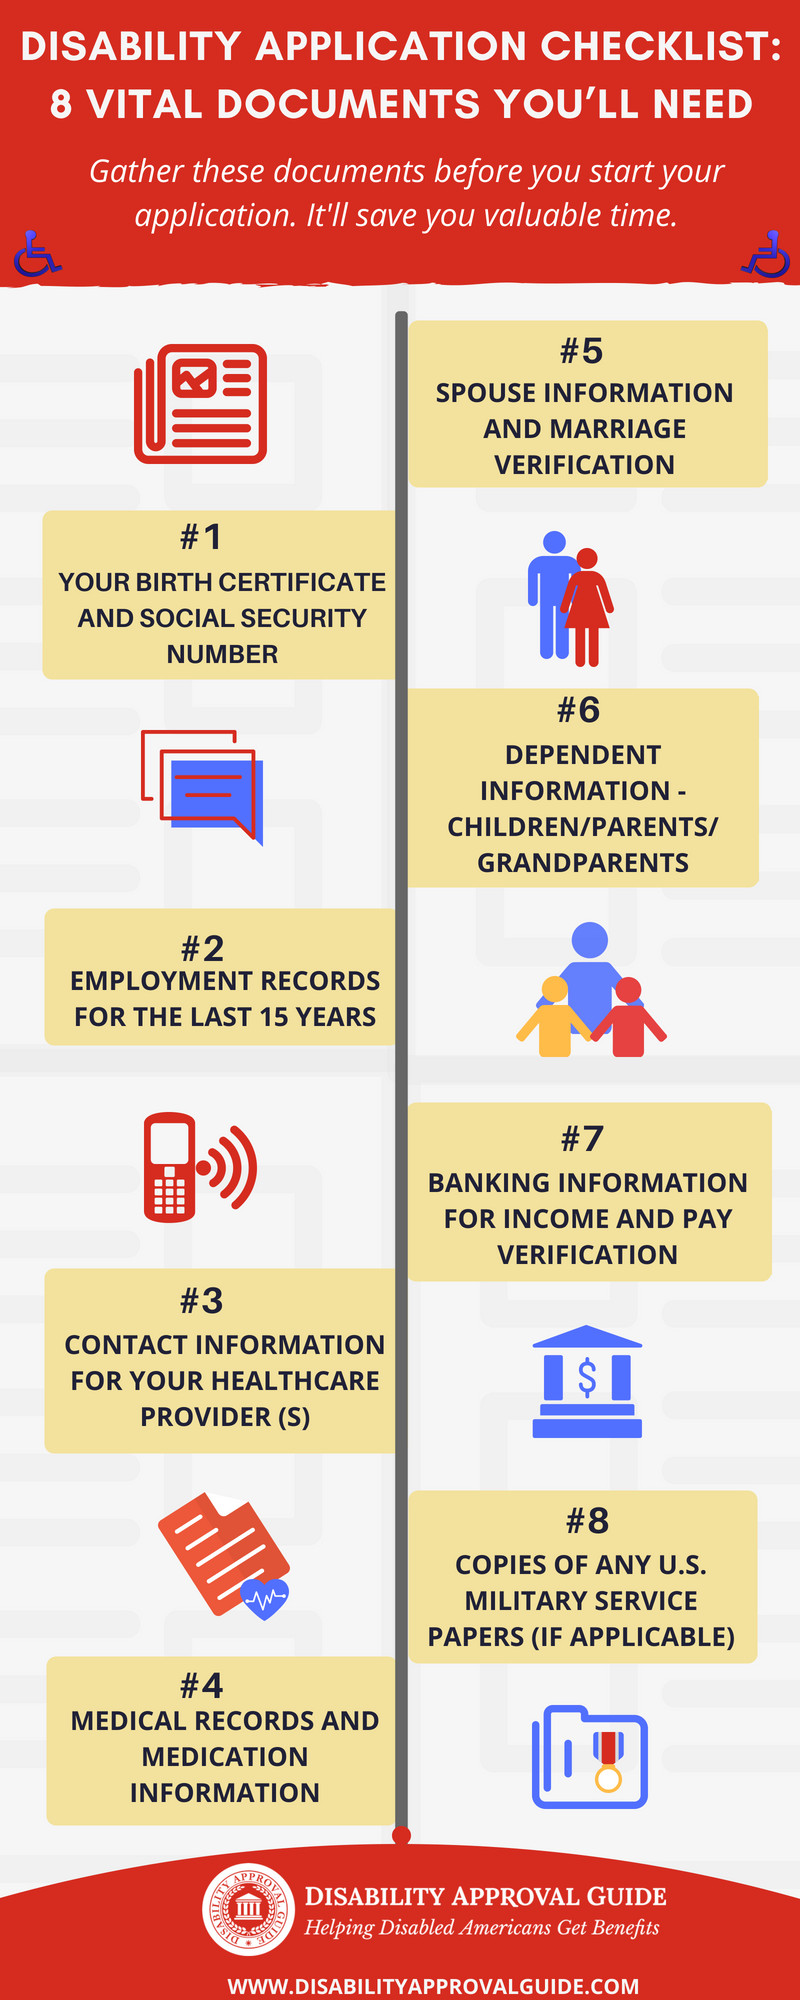 Social Security Disability Application form Easy Disability Application Checklist 8 Things You Need to Apply